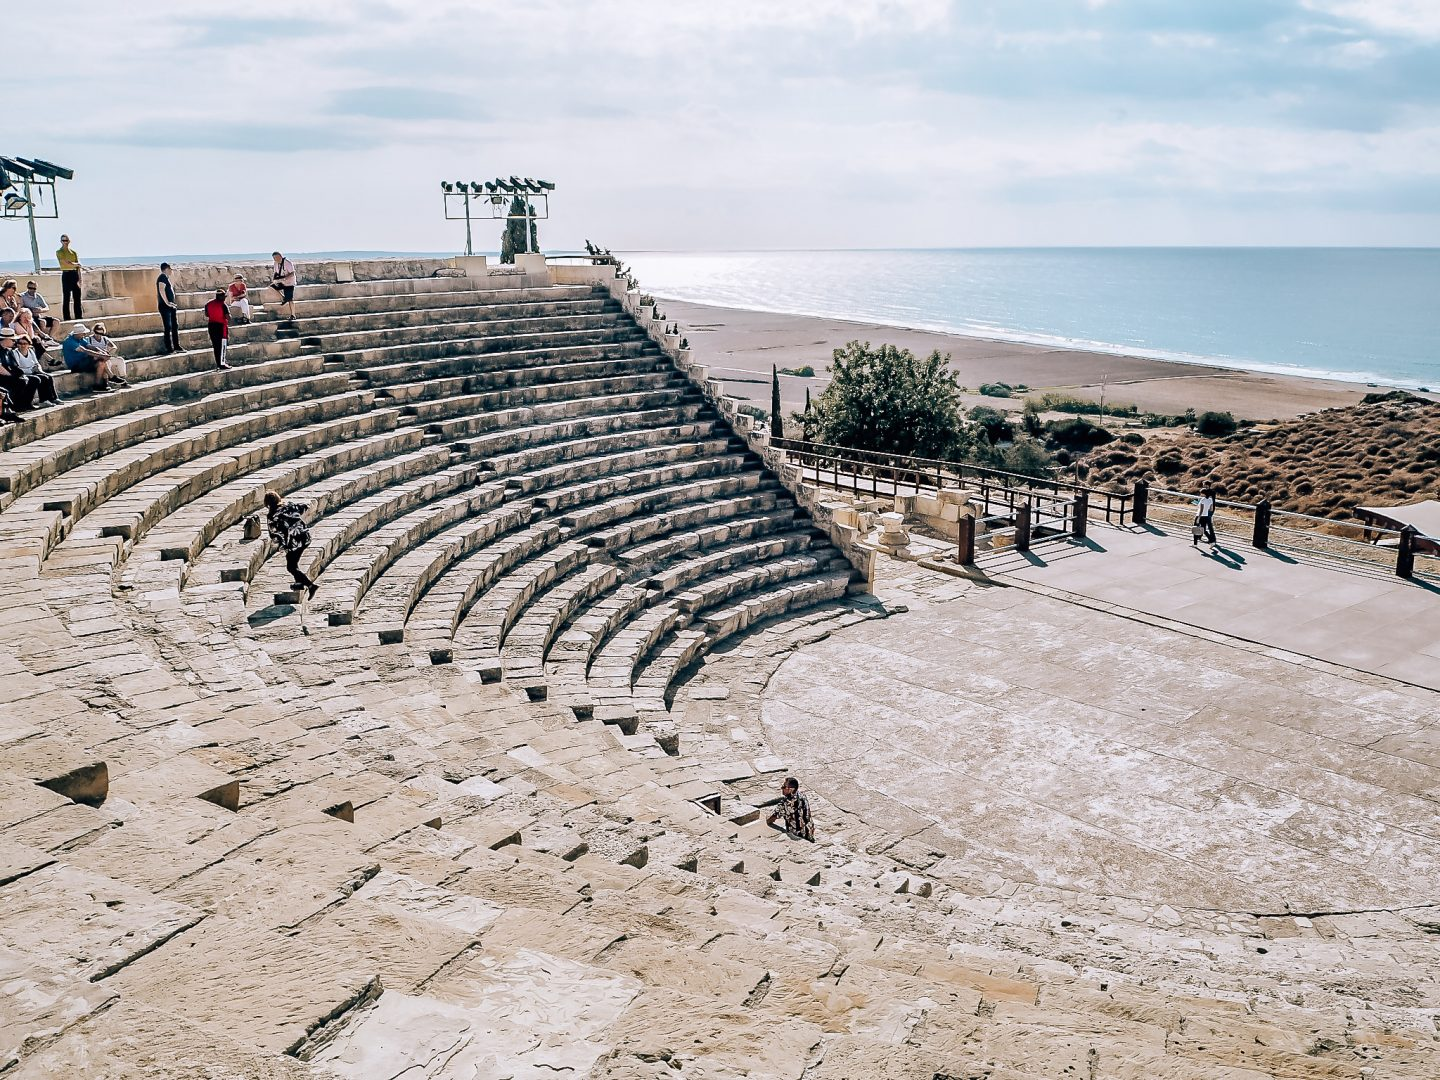 Kourion Archaeological Site